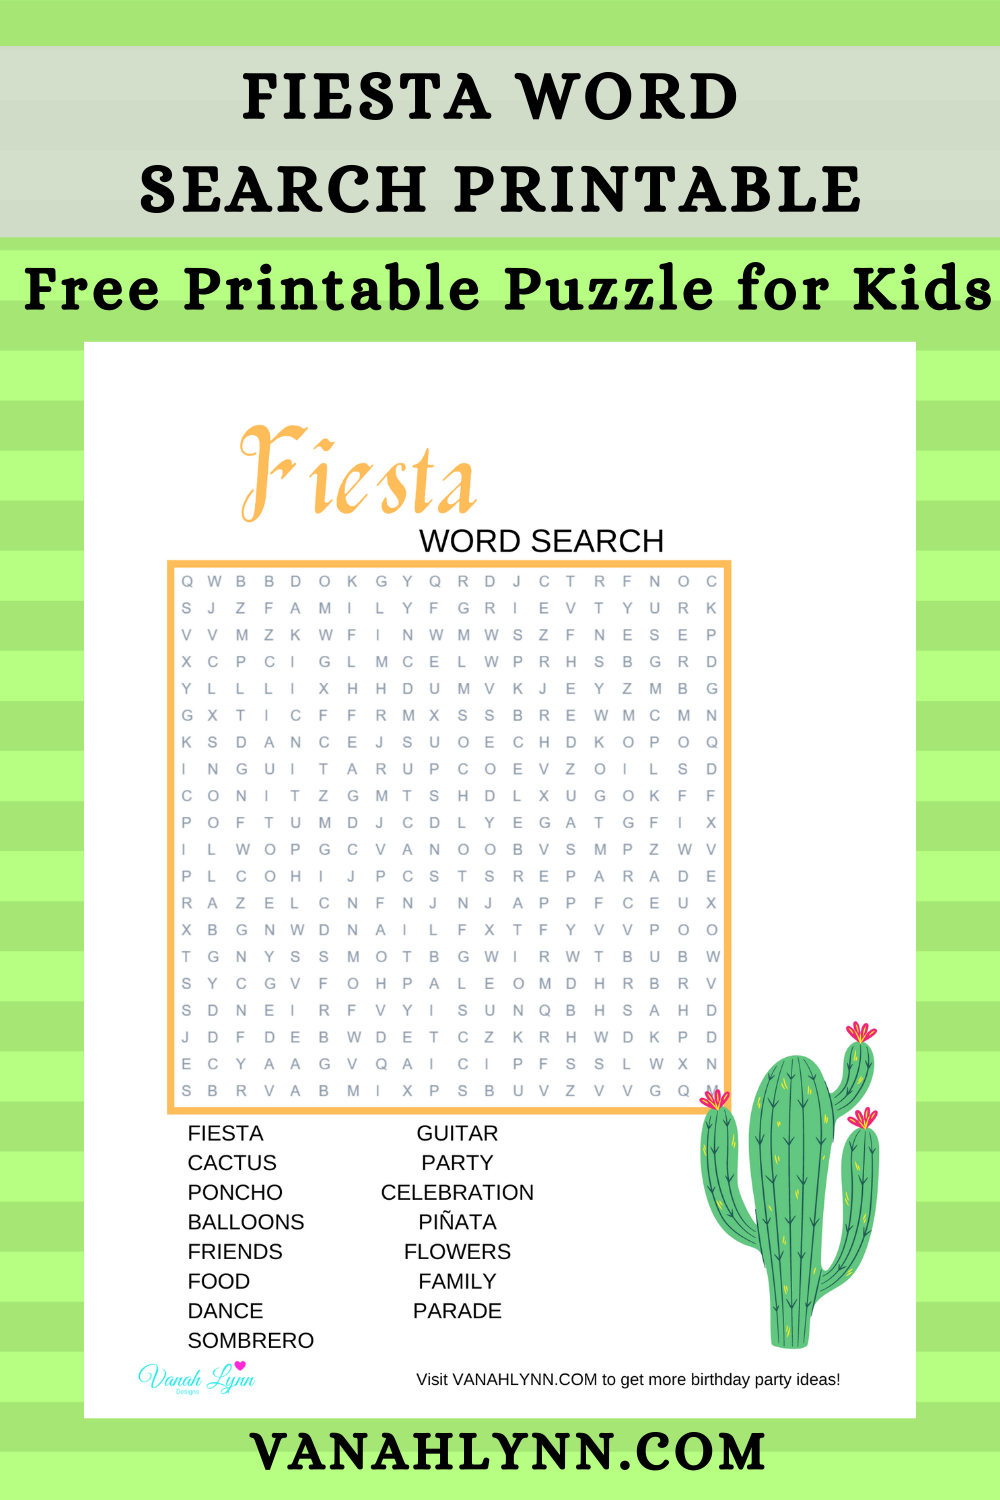 fiesta games ideas for a kids birthday party